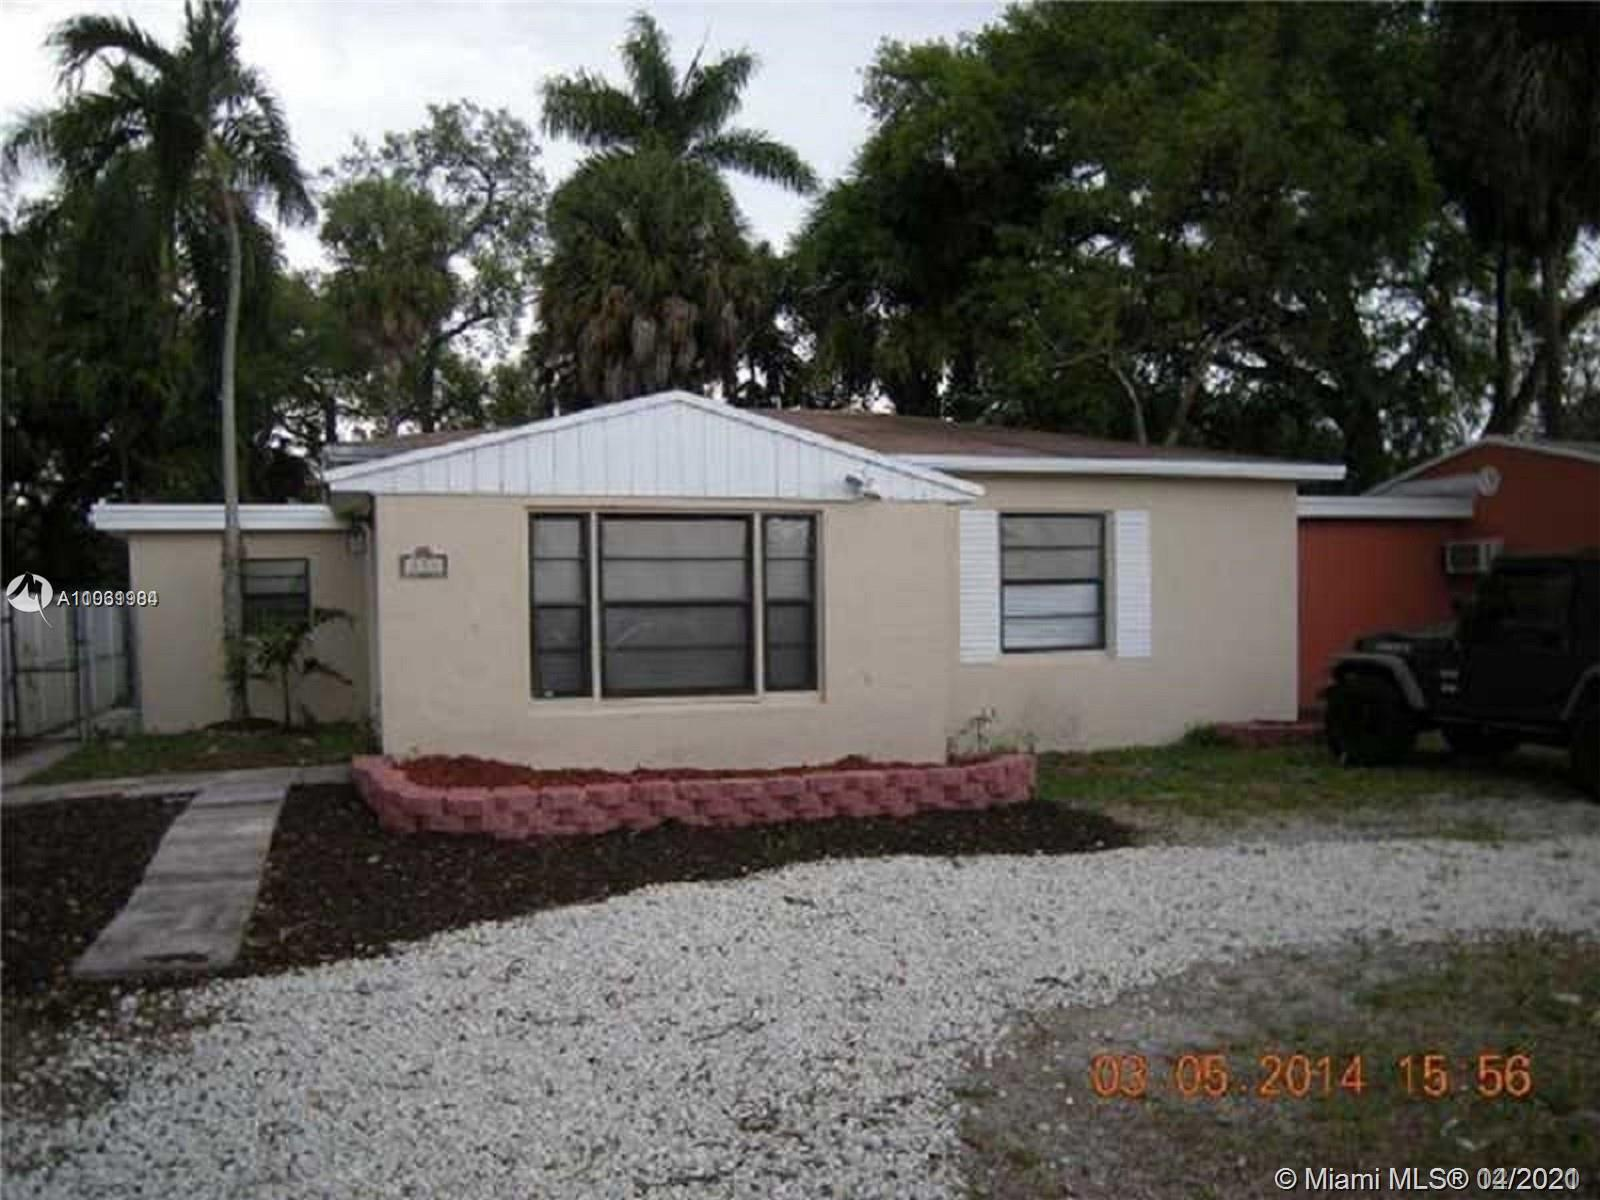 all remodel 3-2 house , new kitchen gabinets, new floors, central ac,  big back yard , house is ren